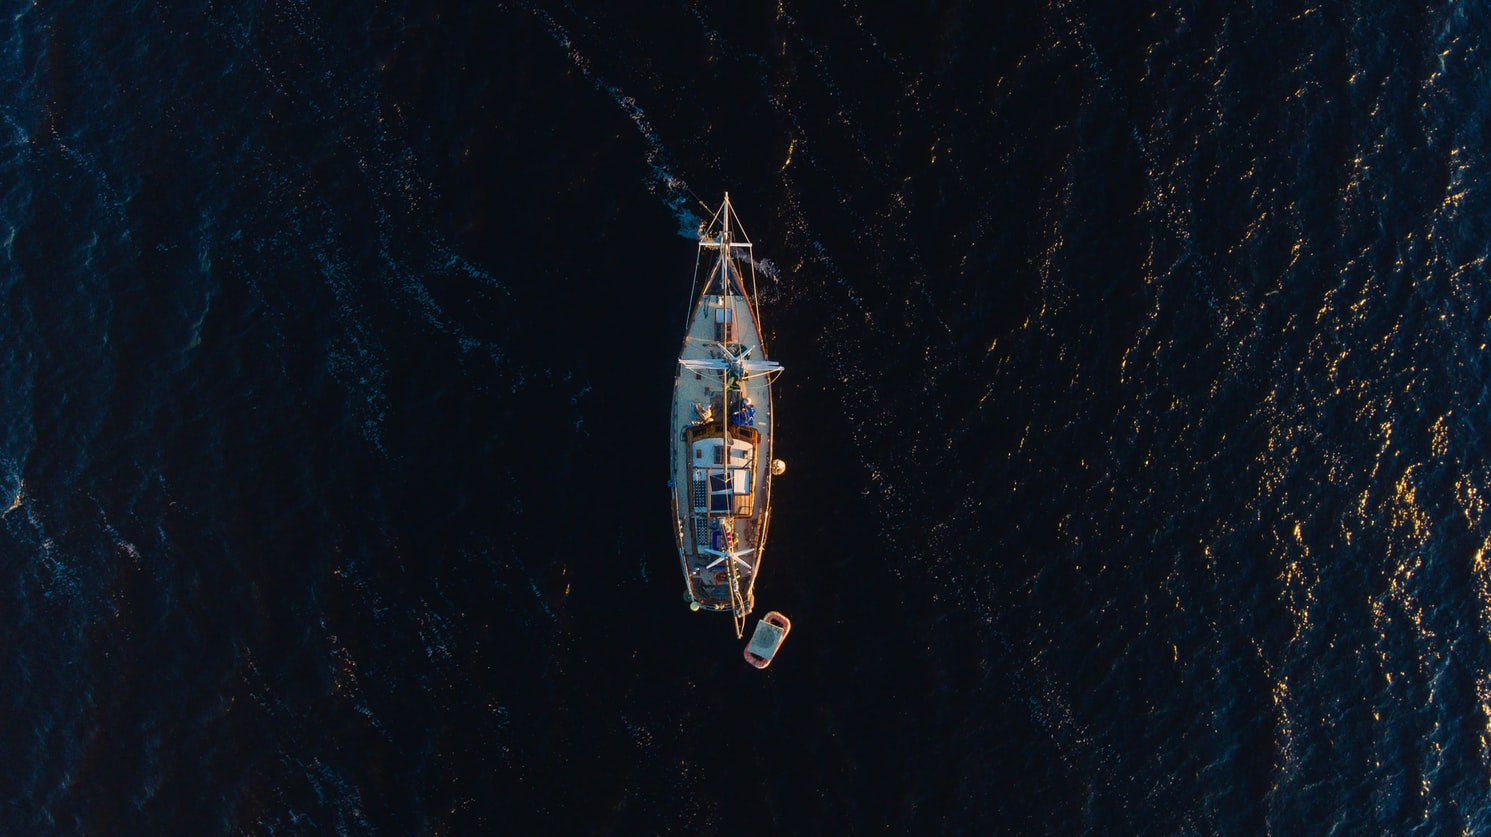 "Lost at Sea by <a href=""https://unsplash.com/photos/SLf9CvojiPo"" target=""_blank"">@lance_asper</a>"